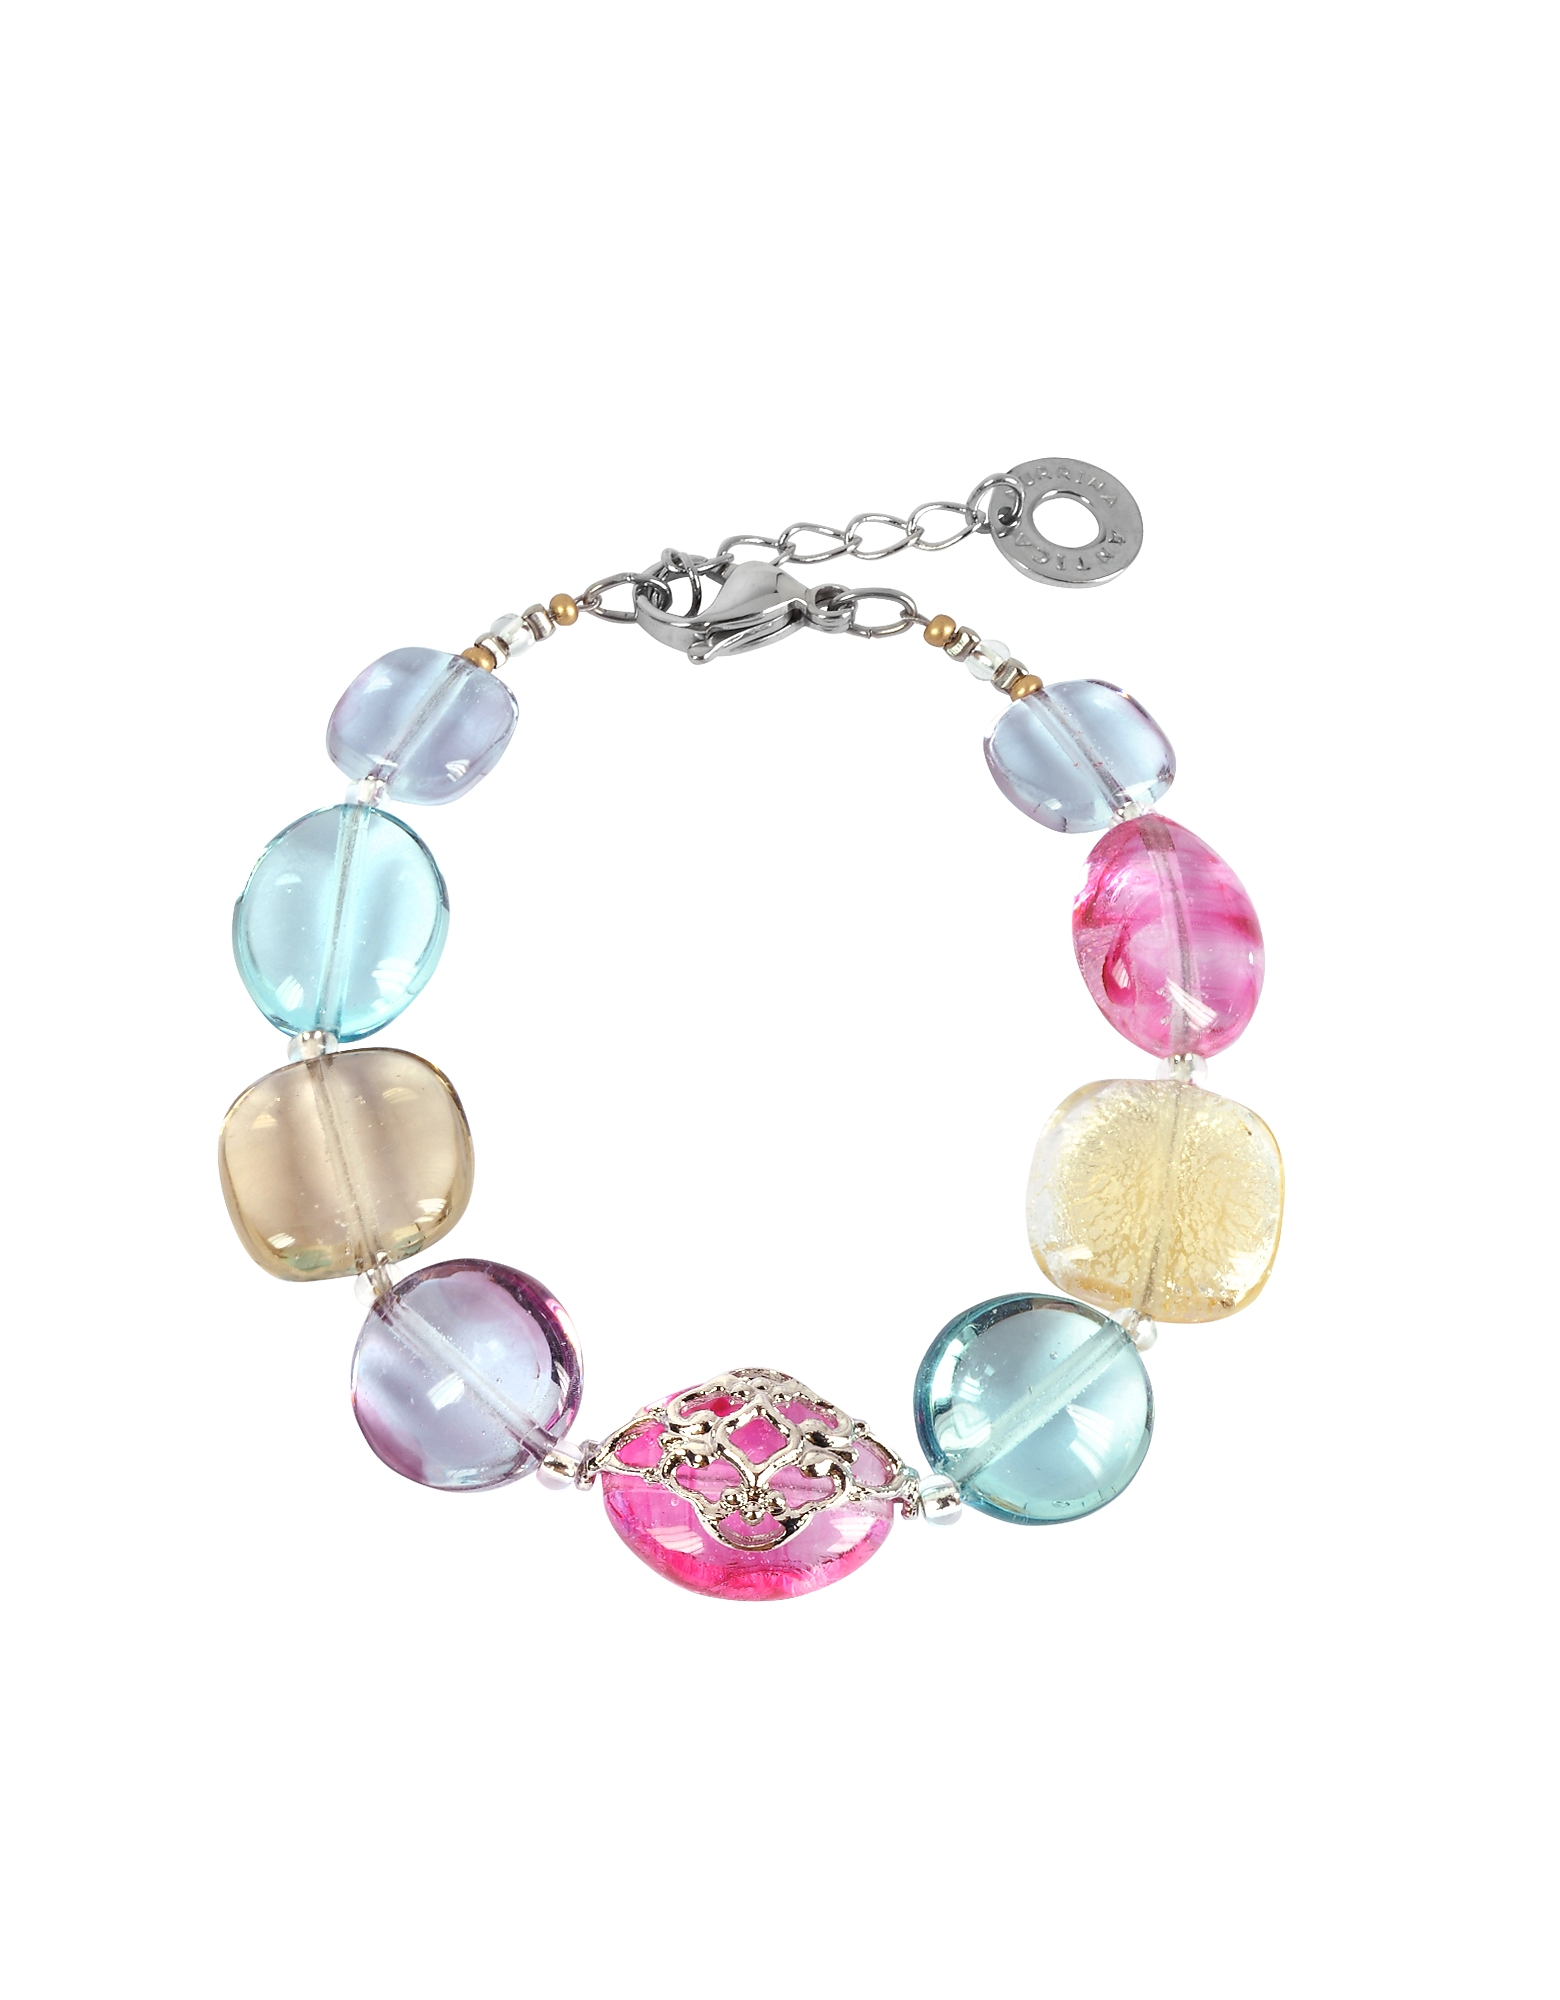 Antica Murrina Bracelets, Florinda Top T Transparent Murano Glass Beads Bracelet